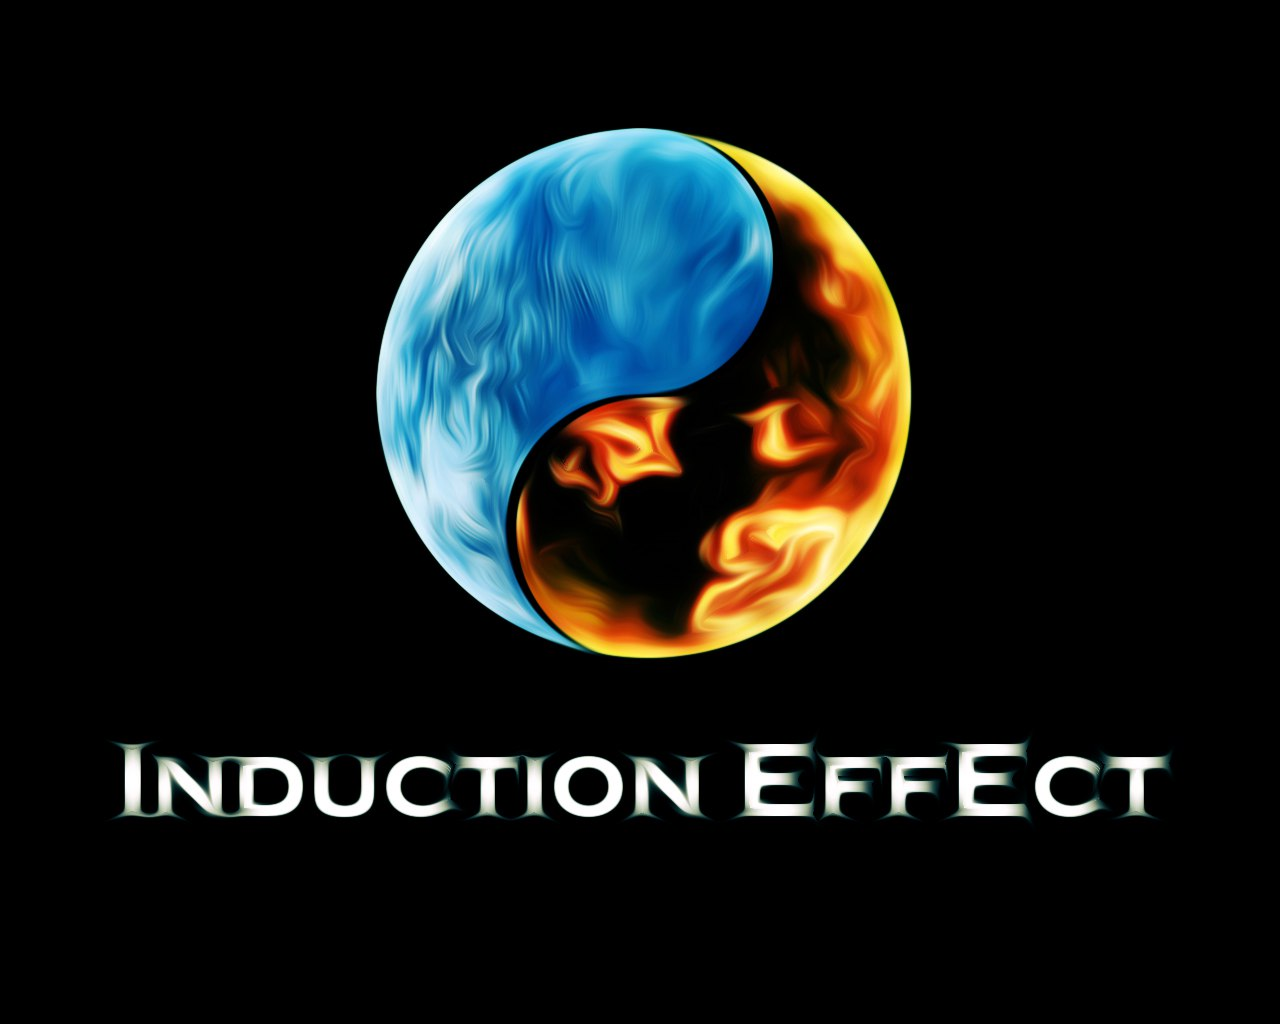 INDUCTION EFFECT